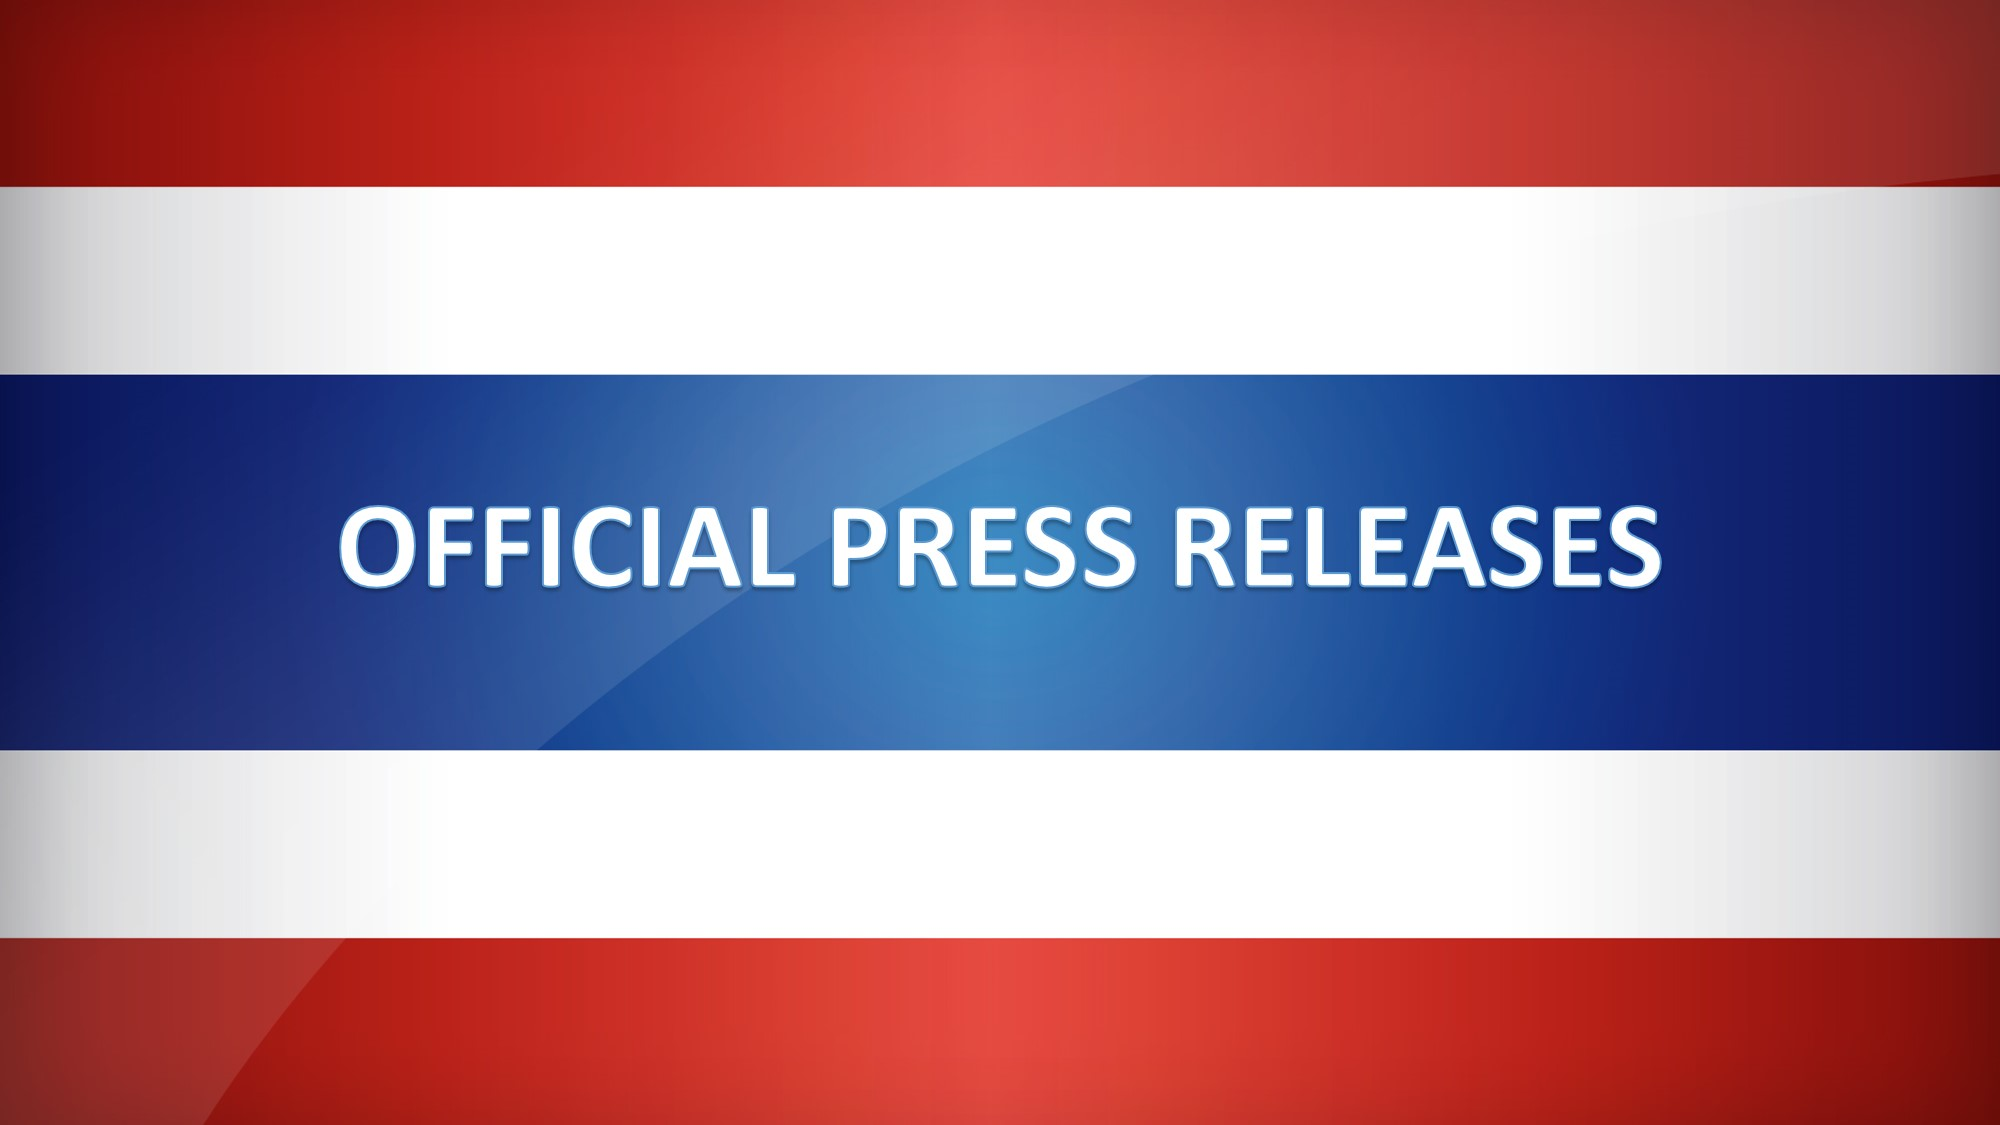 Official Press Releases